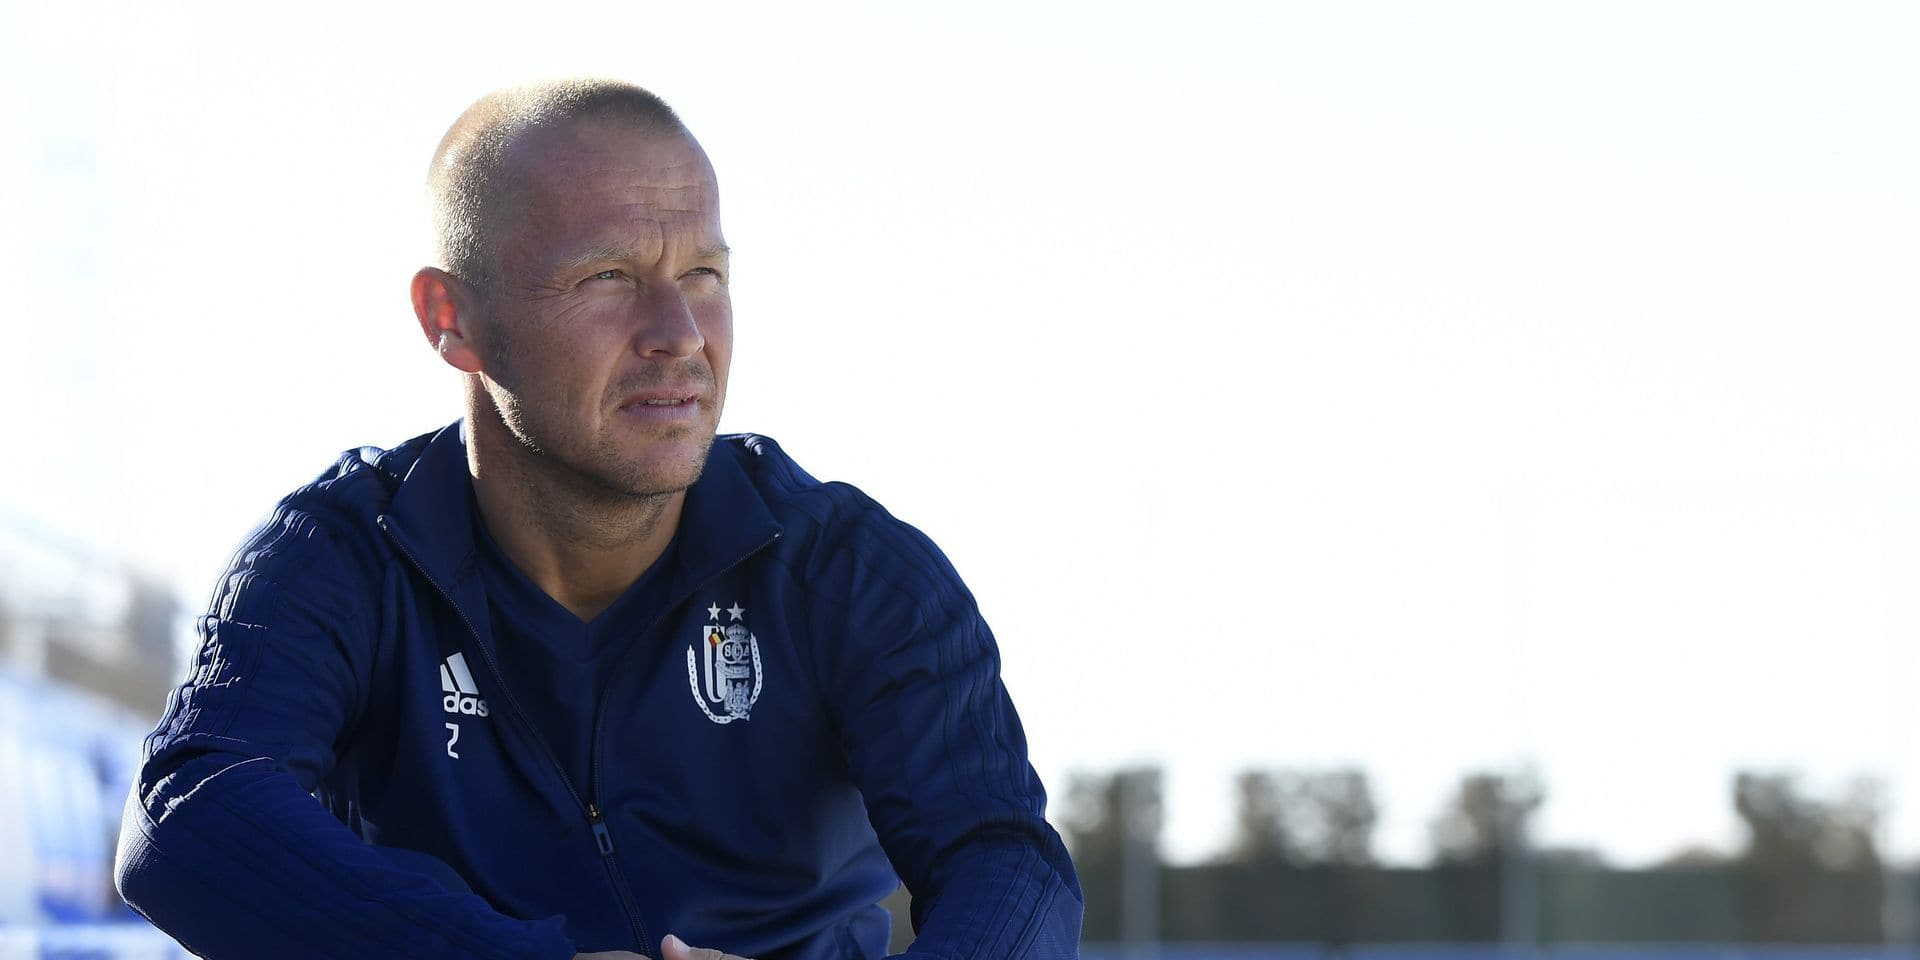 MURCIA, SPAIN - JANUARY 14 : Par Zetterberg assistant coach of Anderlecht pictured before a training session in San Pedro del Pinatar at the midseason training winter stage camp on January 14, 2019 in Murcia, Spain, 14/01/2019 ( Photo by Vincent Kalut / Photonews